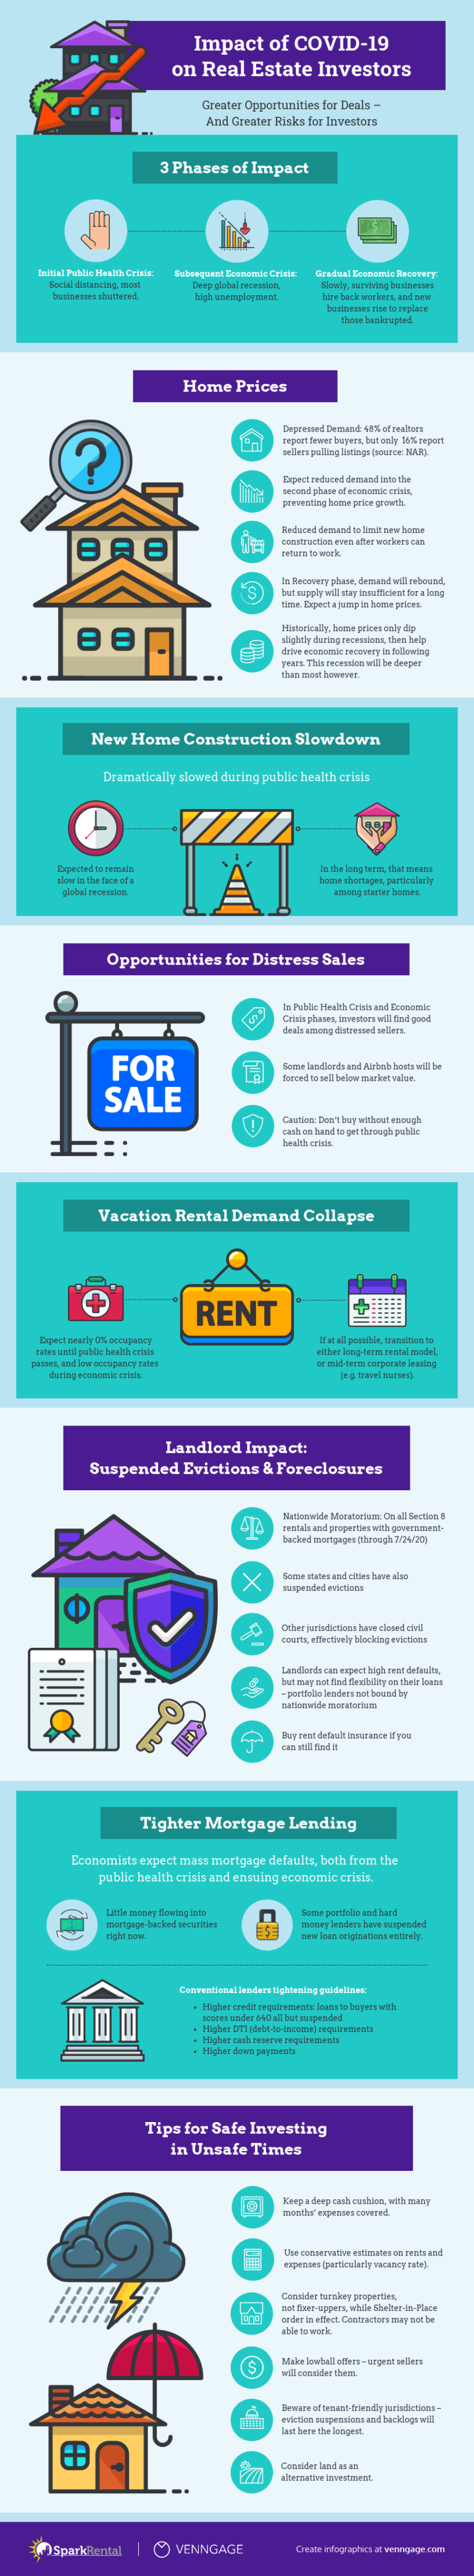 The Impact of COVID-19 on Real Estate Investors Infographic